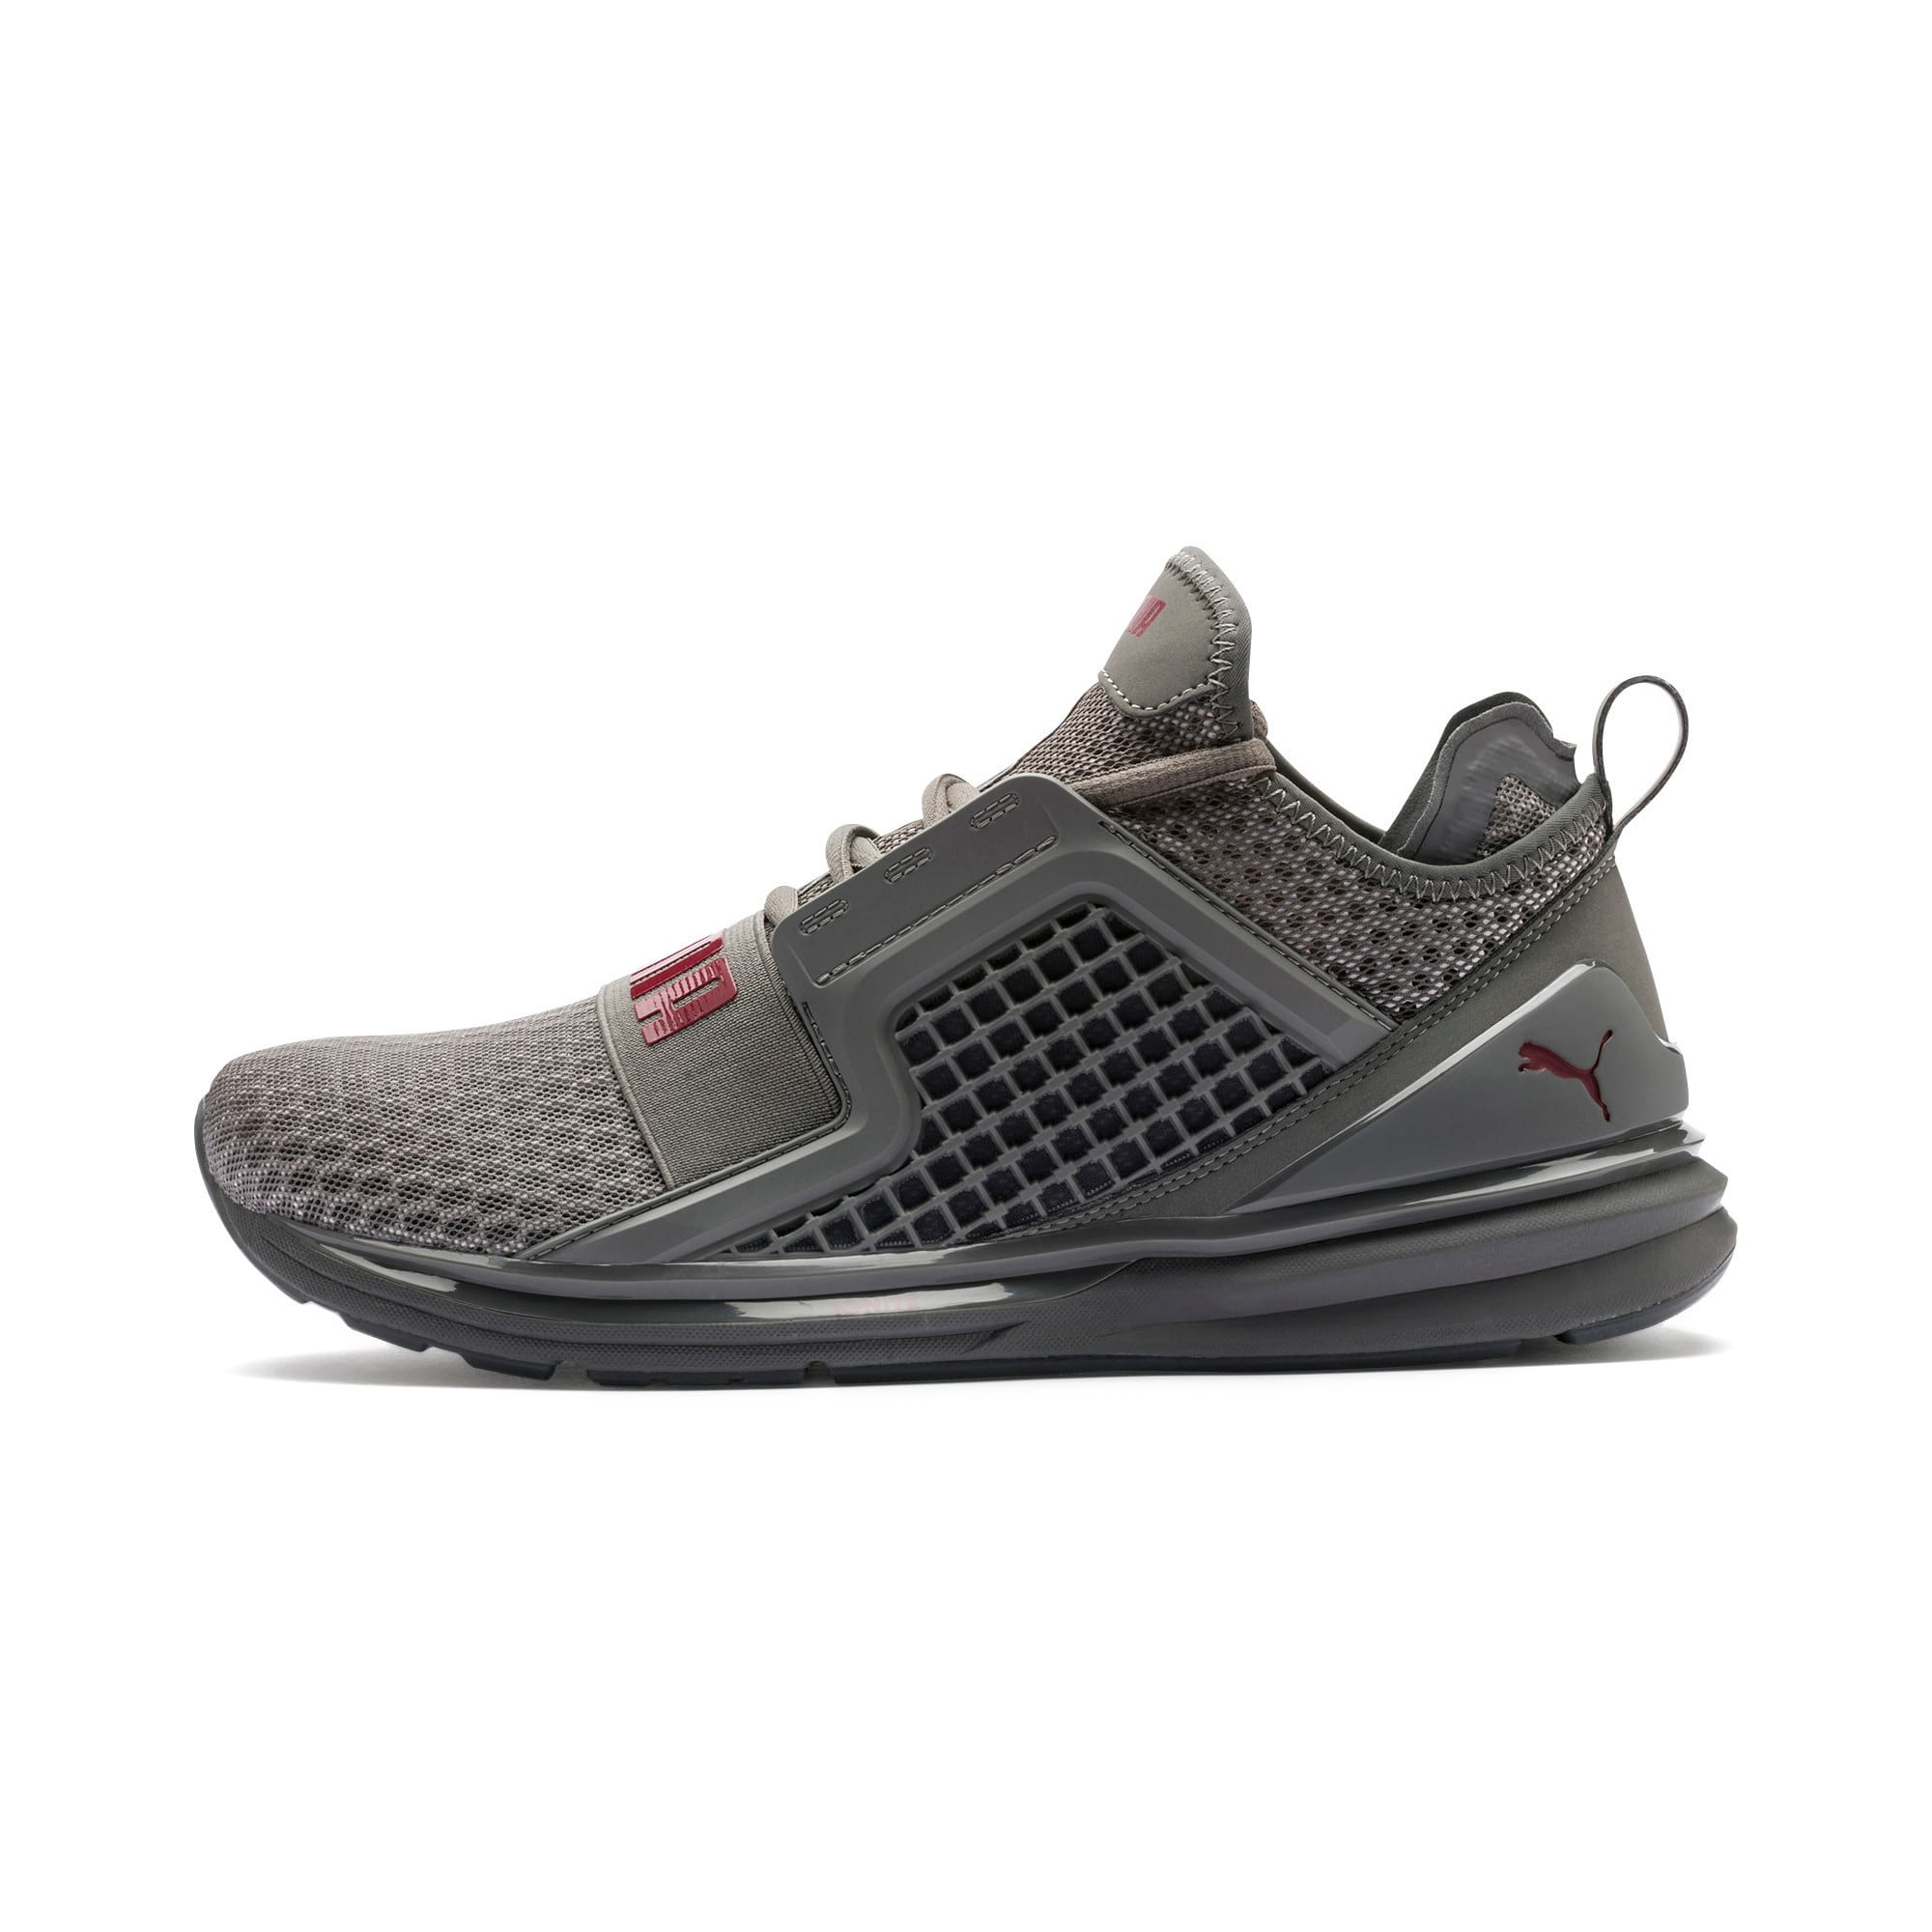 Thumbnail 1 of IGNITE Limitless Men's Running Shoes, CASTLEROCK-Rhubarb, medium-IND